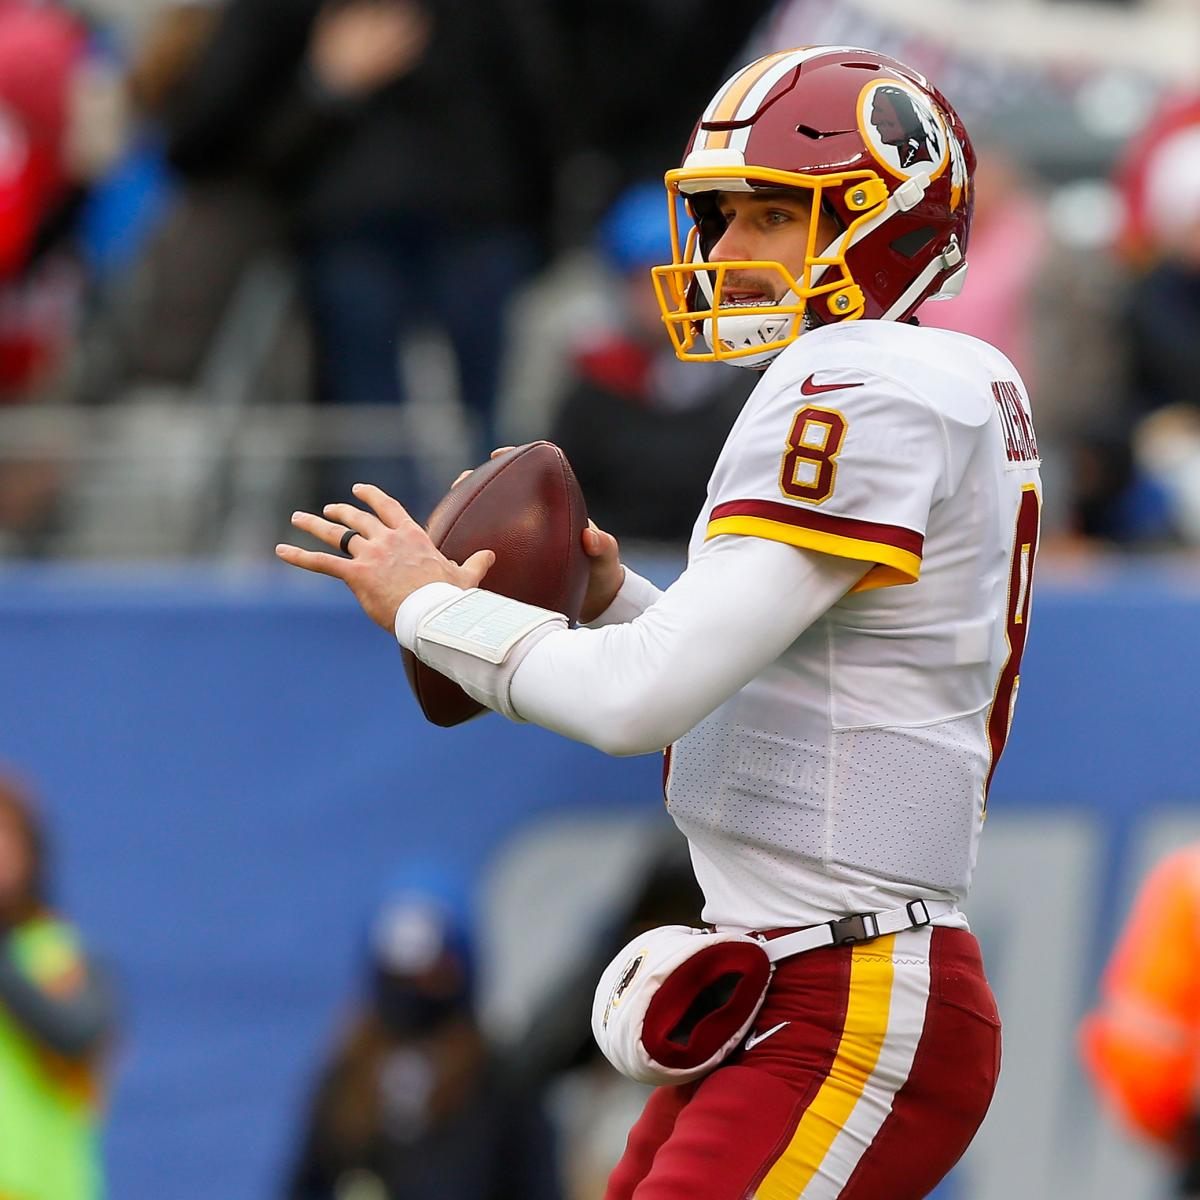 c6b4b5db1ab Kirk Cousins Rumors  Jets Reportedly Won t Give QB Blank Check ...